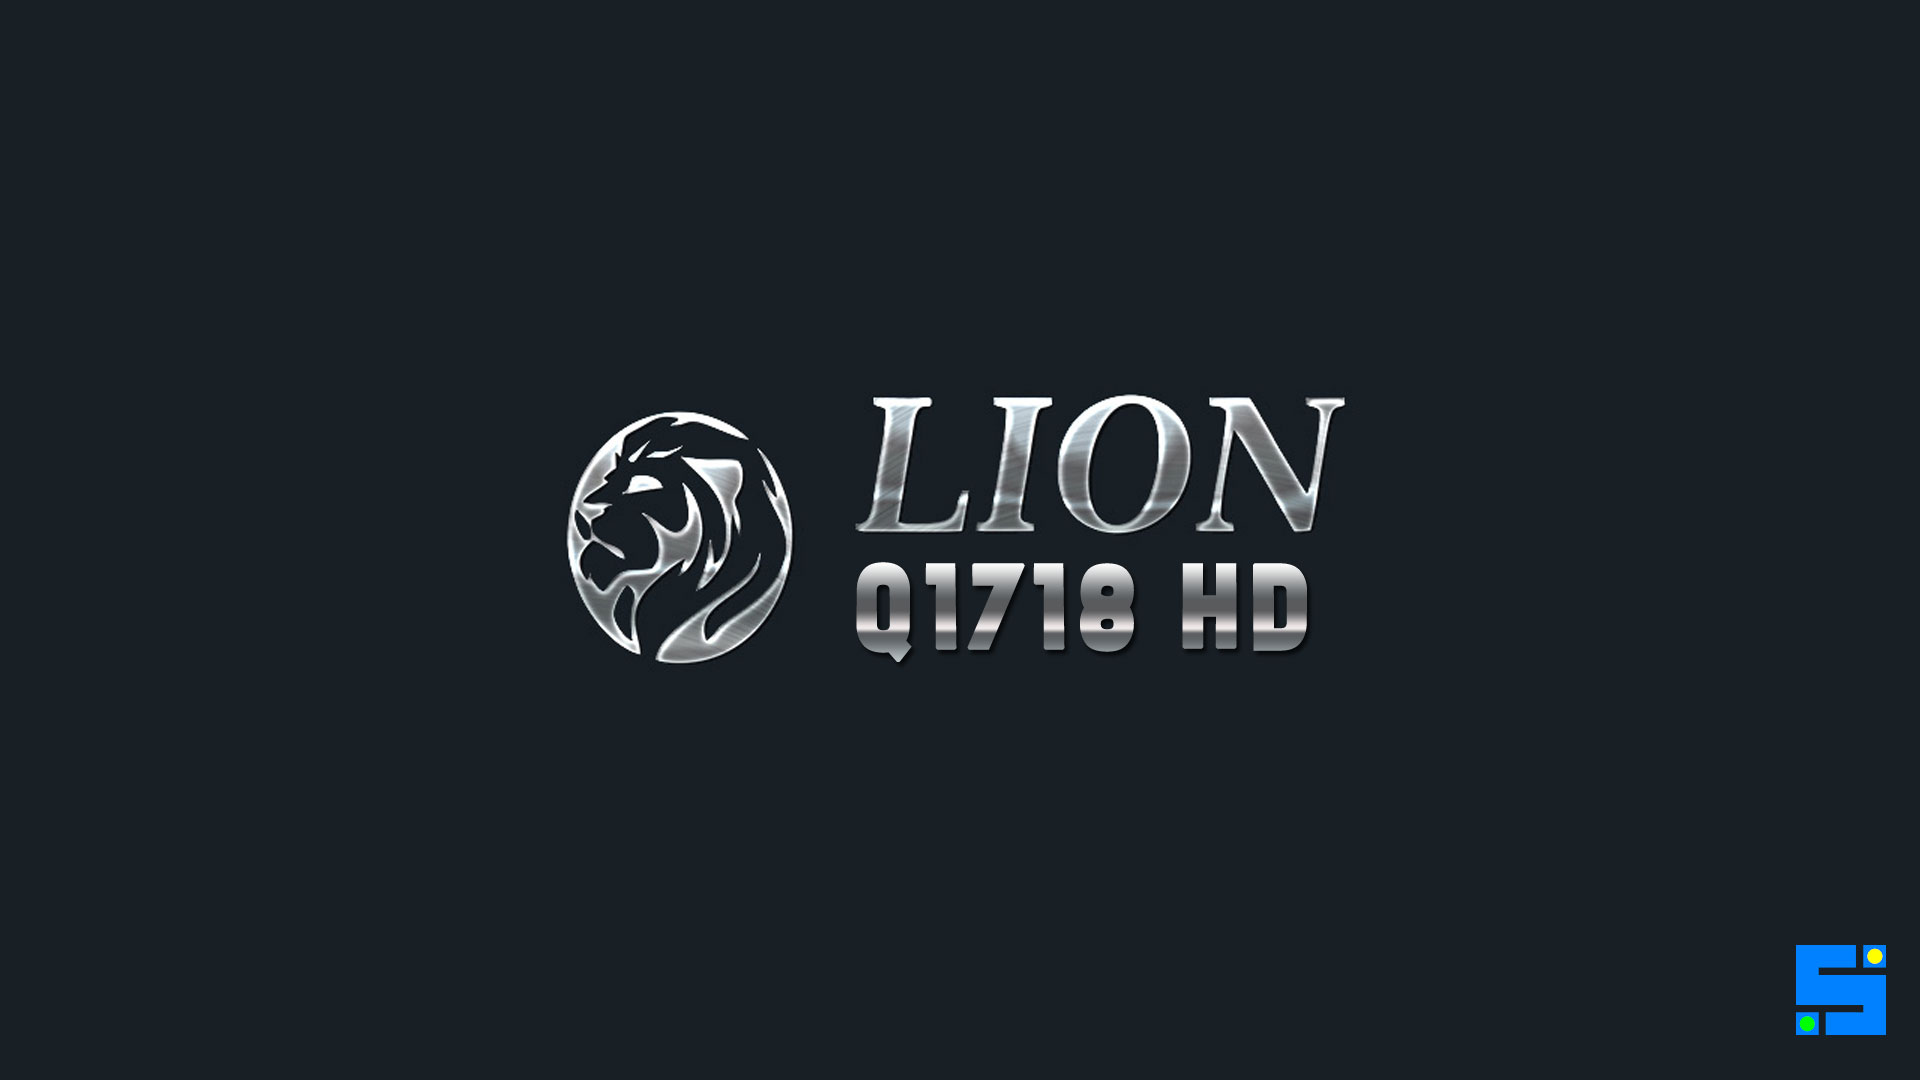 Download Software Lion Q1718 HD Update Firmware Receiver GX6605S